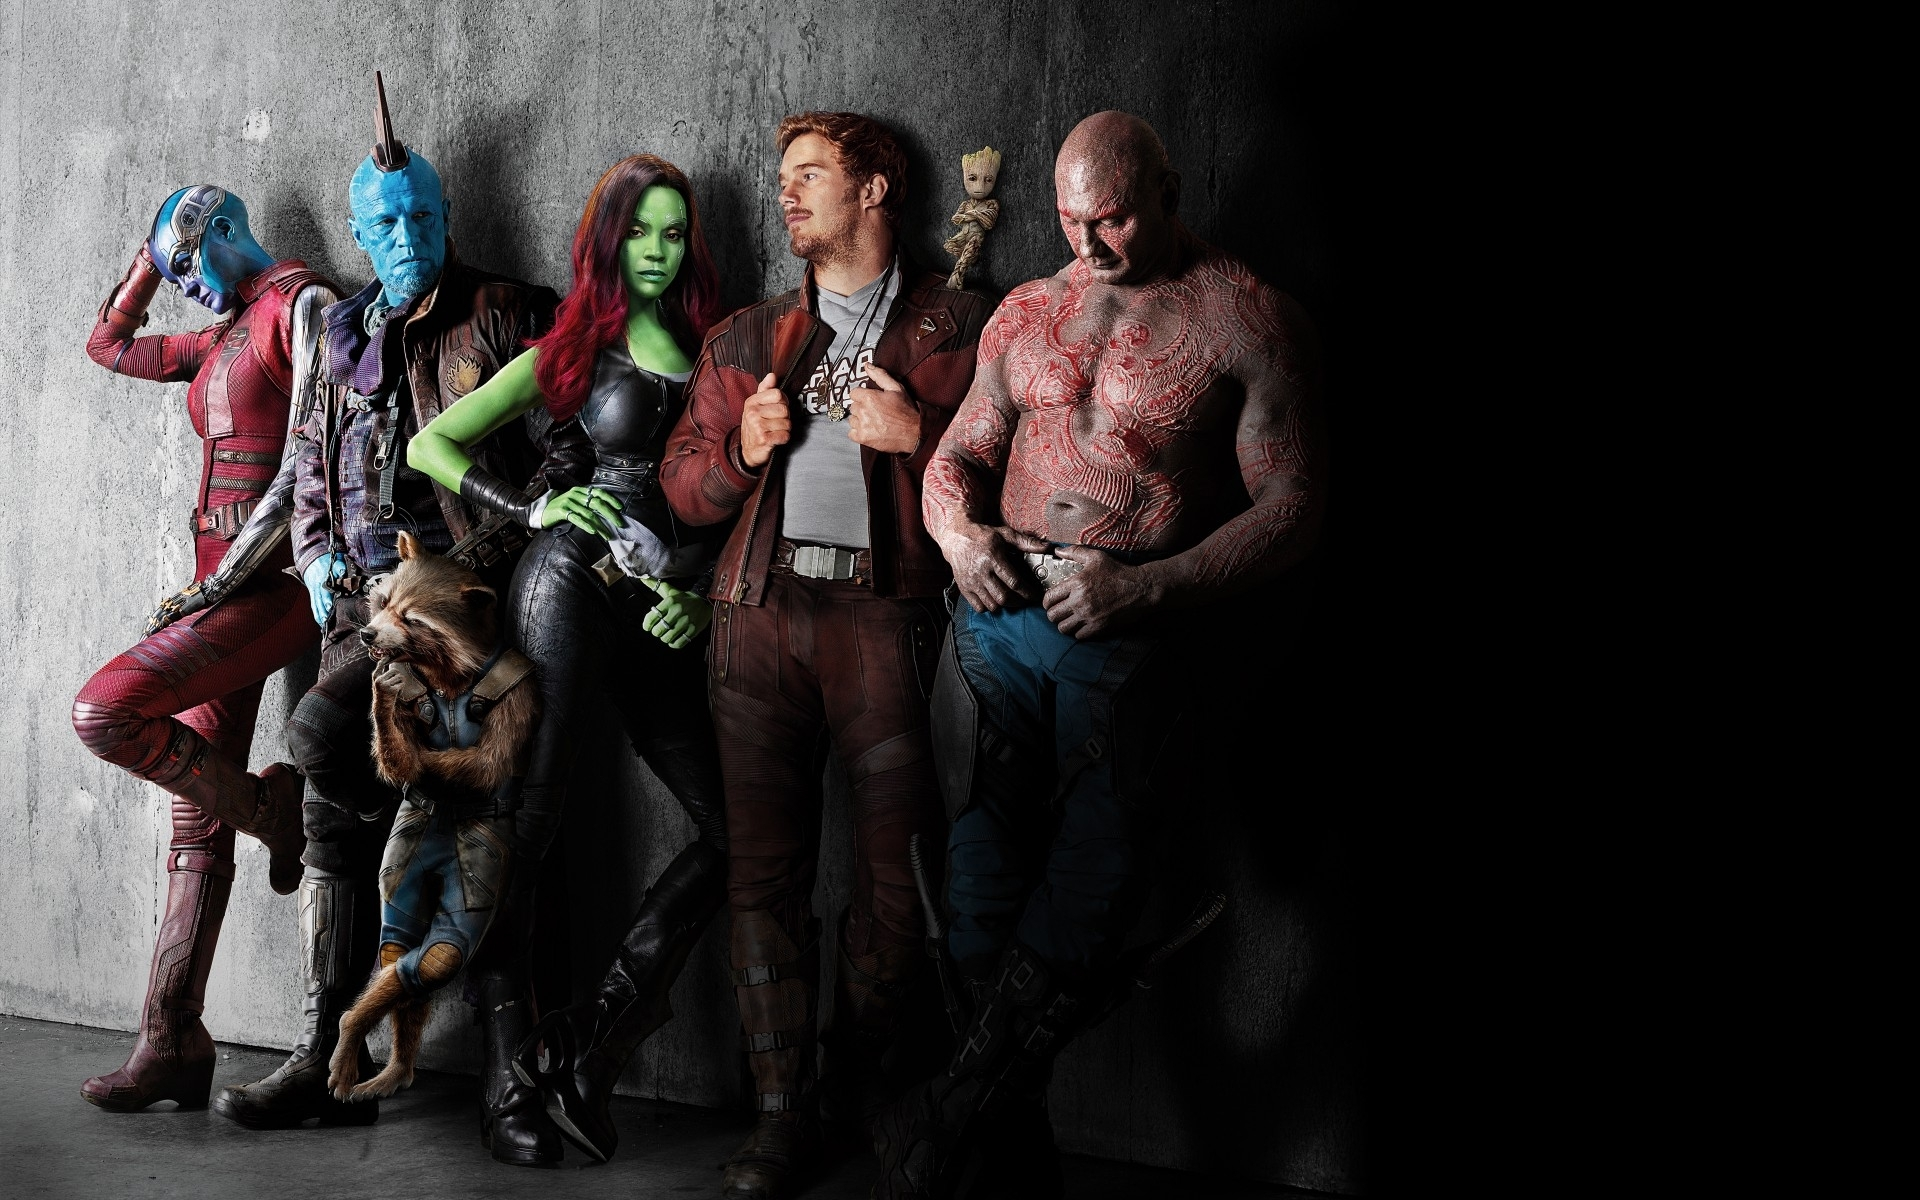 guardians of the galaxy vol 2 4k 8k 2017 wallpapers | hd wallpapers